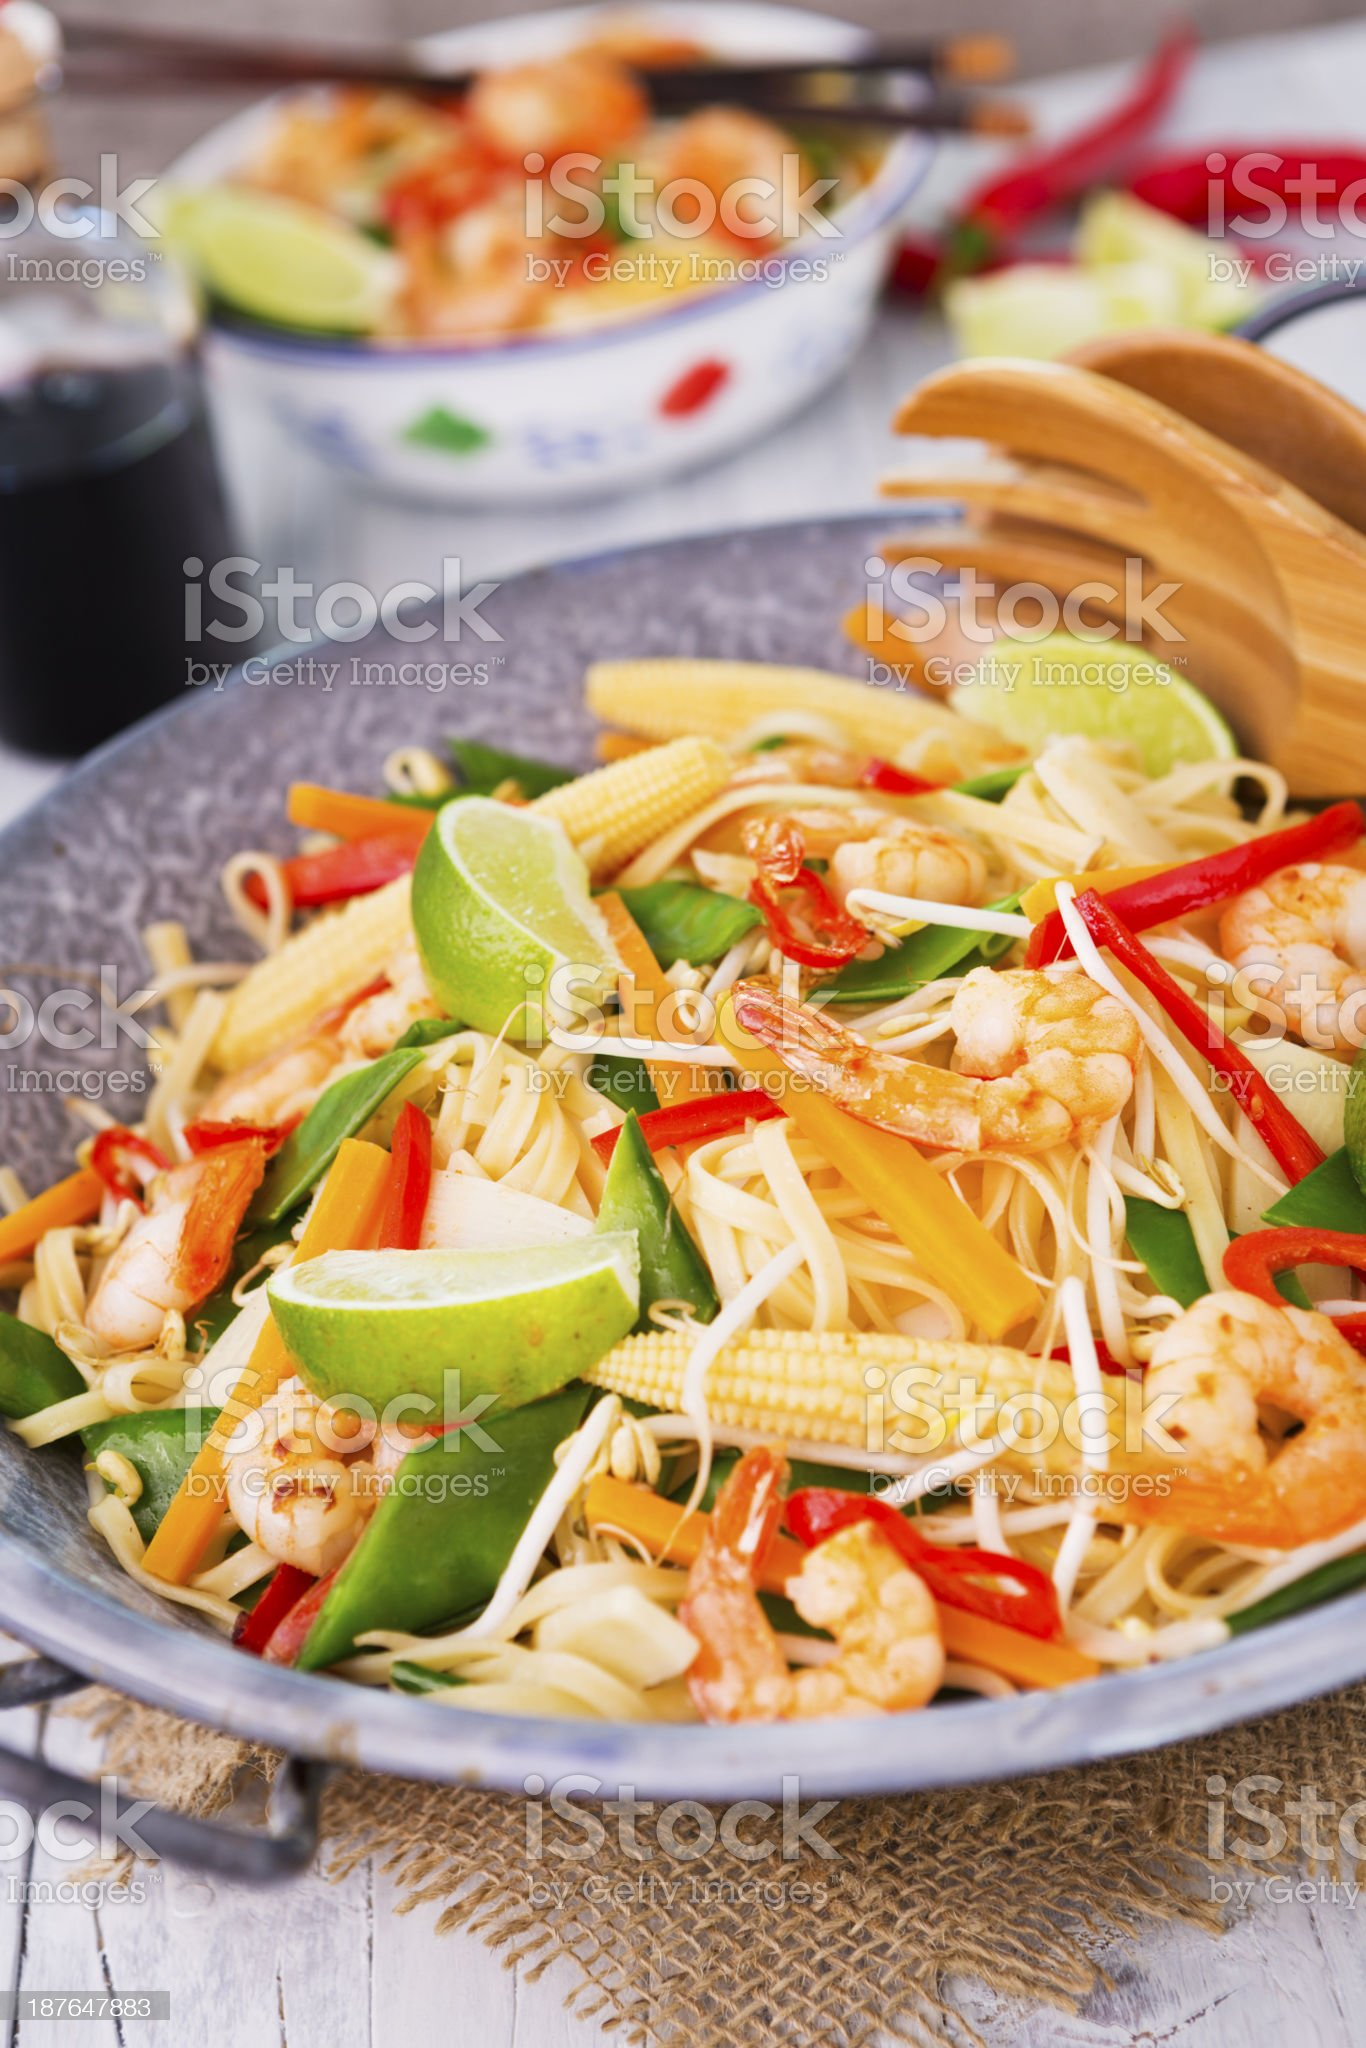 Healthy shrimp and vegetables stir-fry in a wok, brightly lit royalty-free stock photo